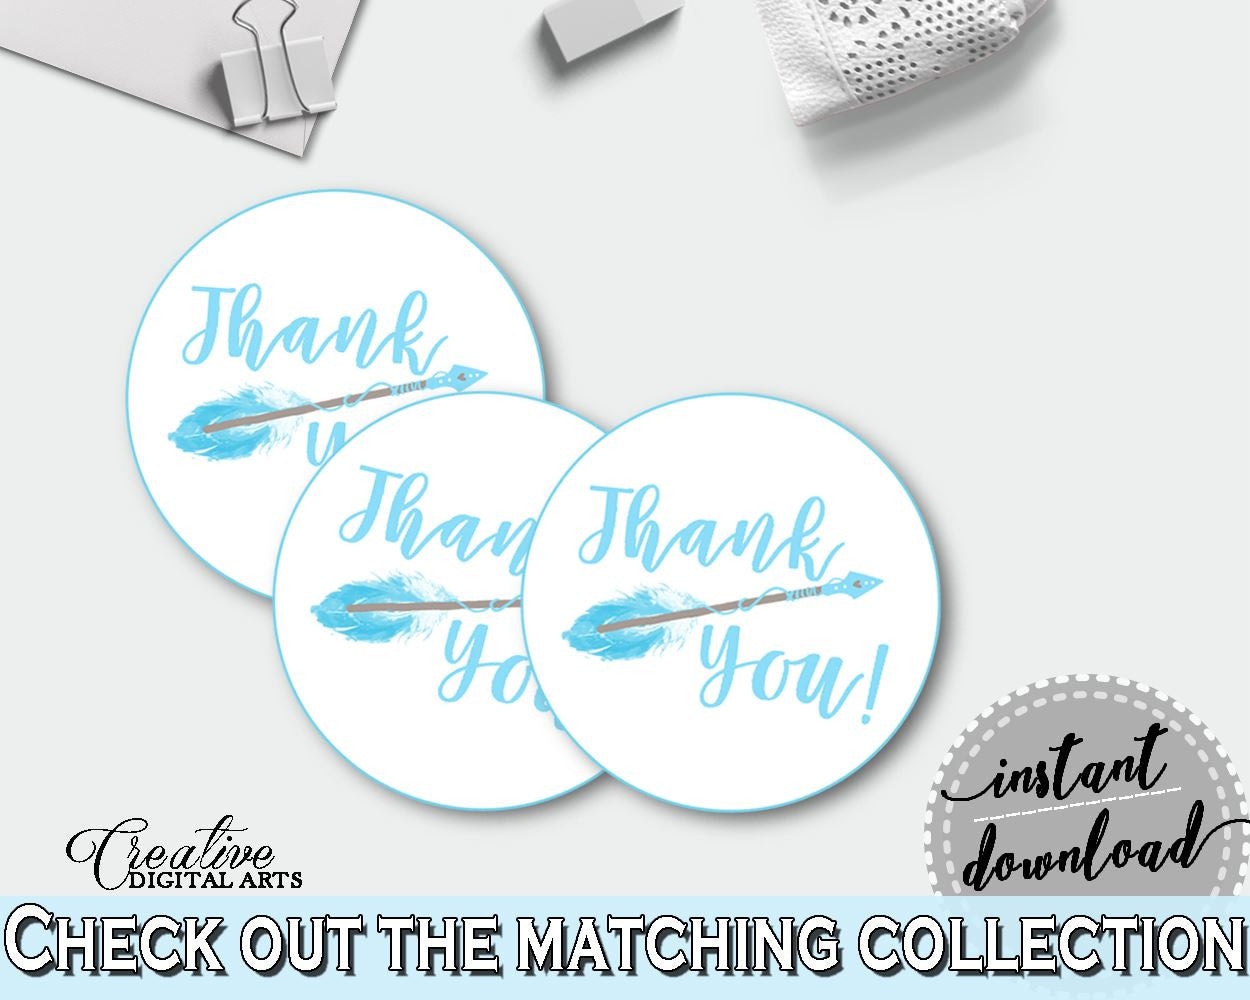 Round Tags Baby Shower Round Tags Aztec Baby Shower Round Tags Blue White Baby Shower Aztec Round Tags - QAQ18 - Digital Product